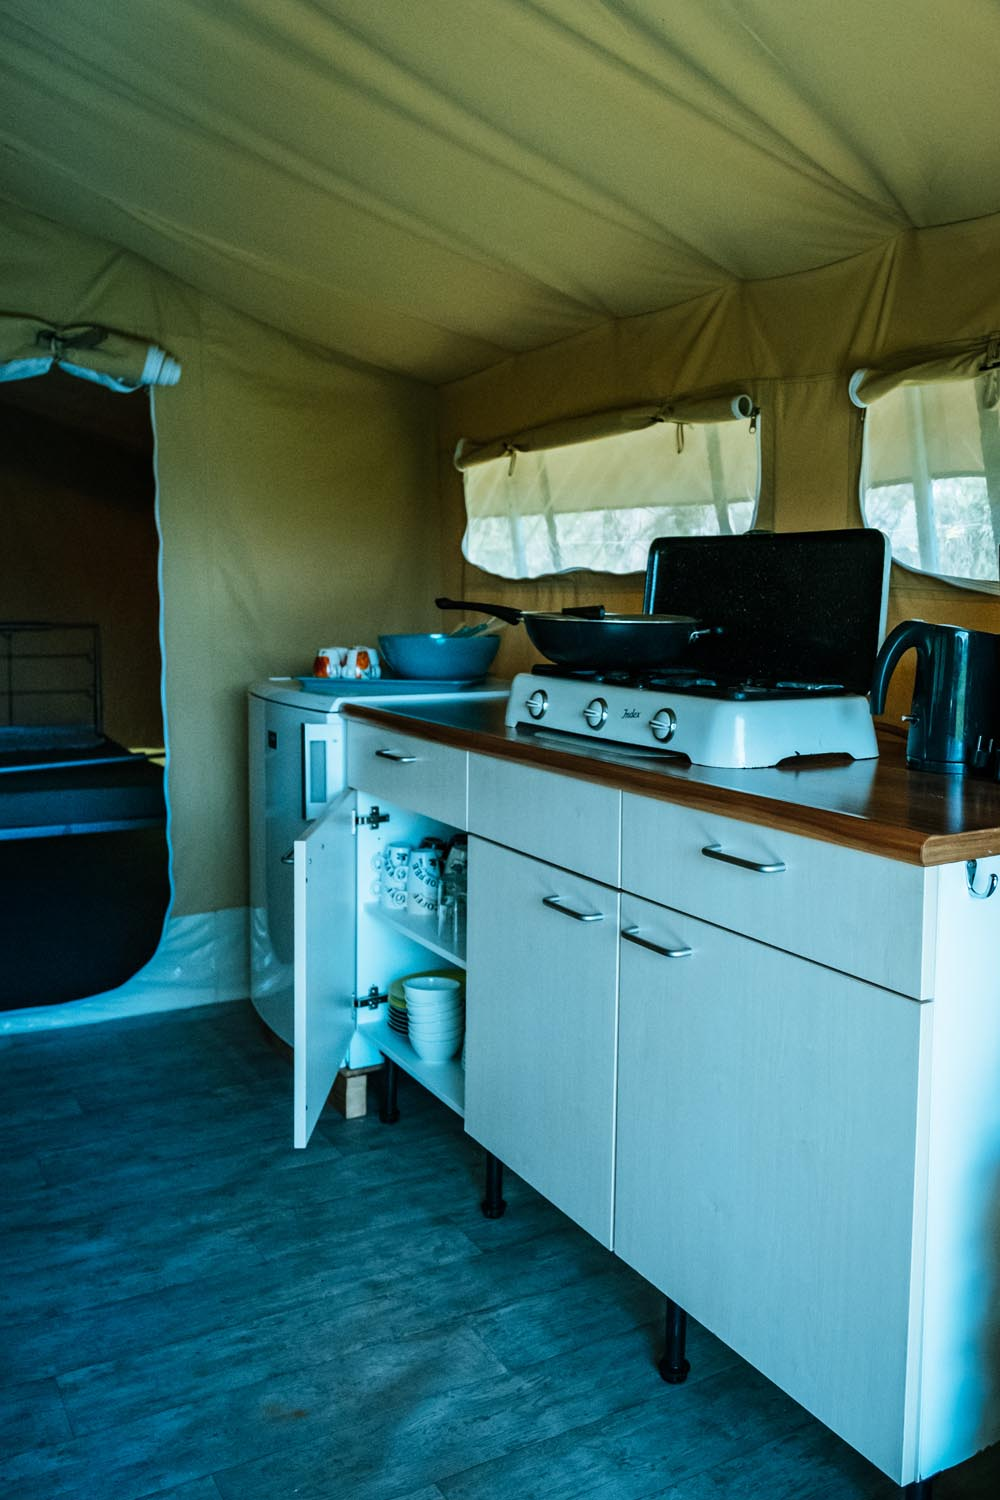 Zoover_Camping_Mebel-9544.jpg